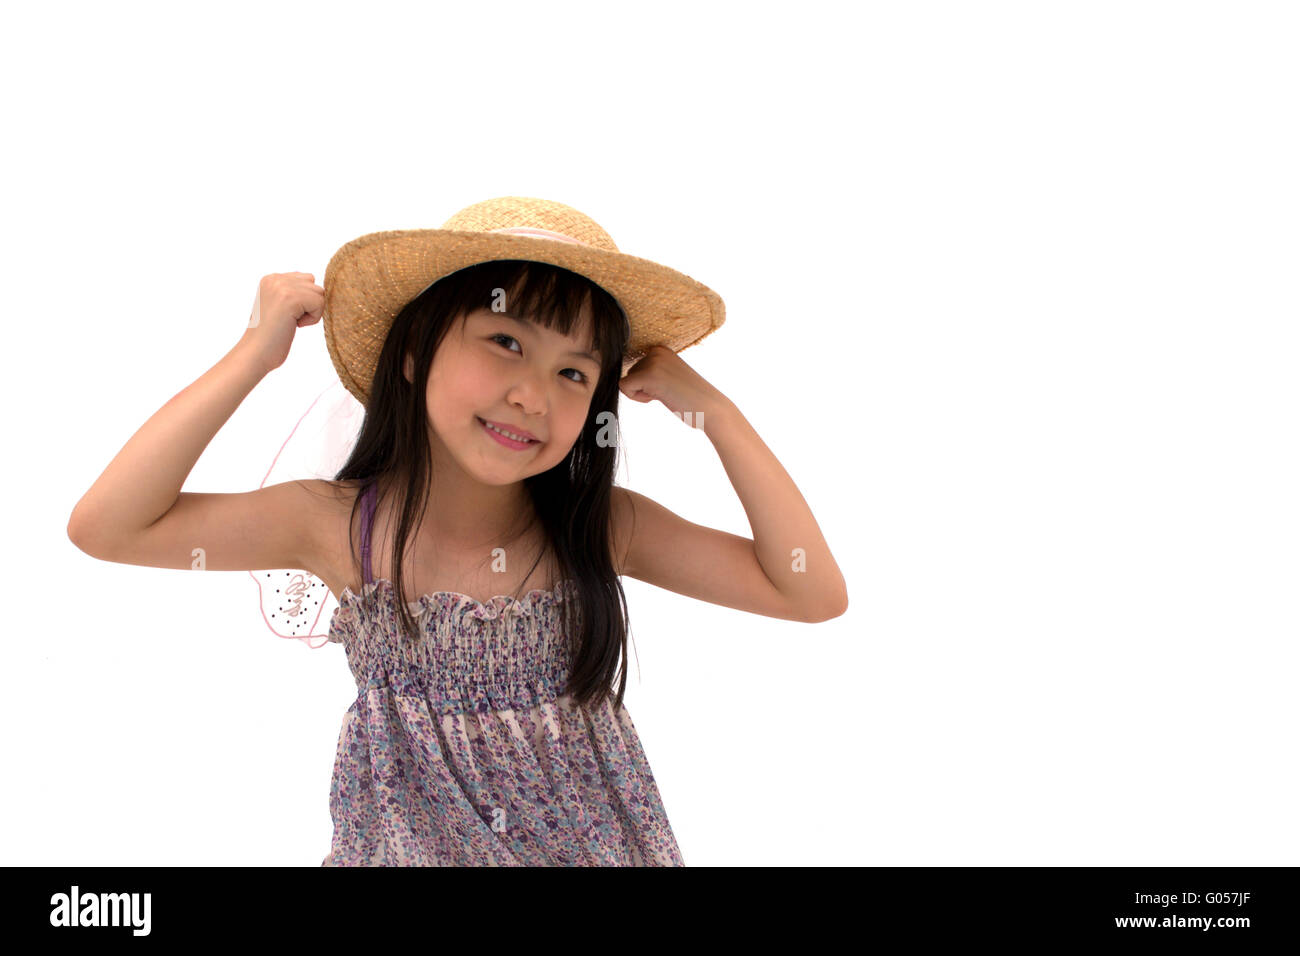 b2630448837 Japanese Straw Hat Stock Photos   Japanese Straw Hat Stock Images ...